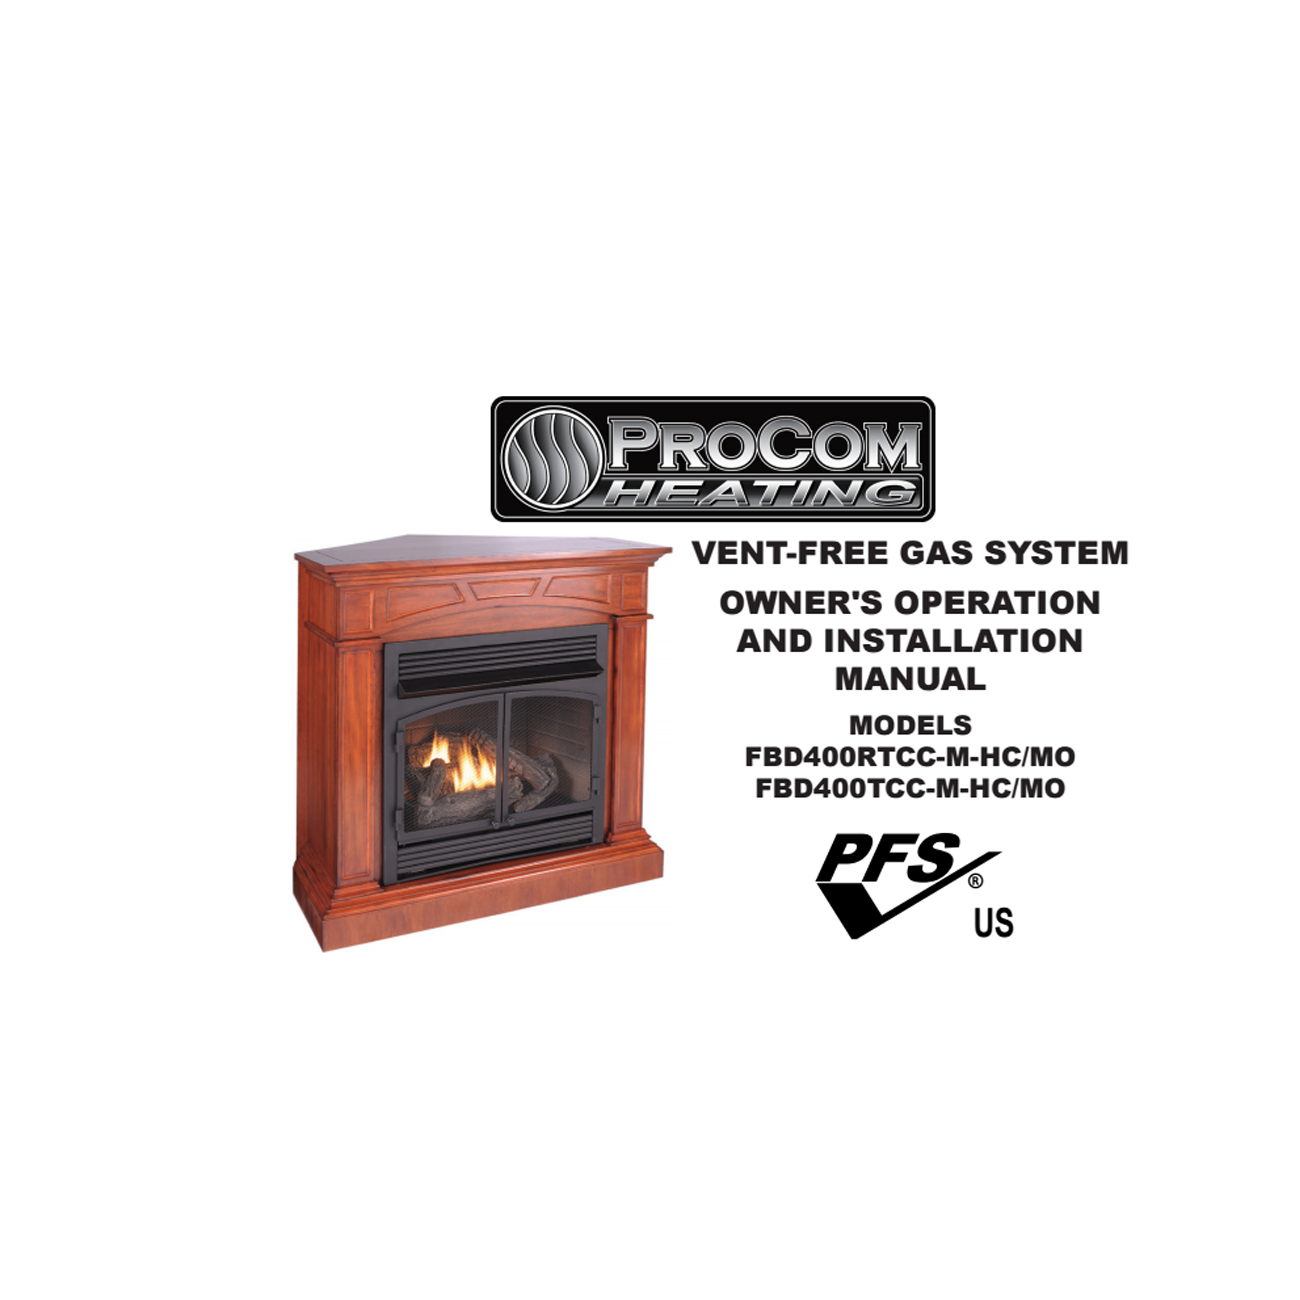 Ventless fireplace insert with mantel fbd400rtcc series procom heating fbd400rtcc series procom heating teraionfo